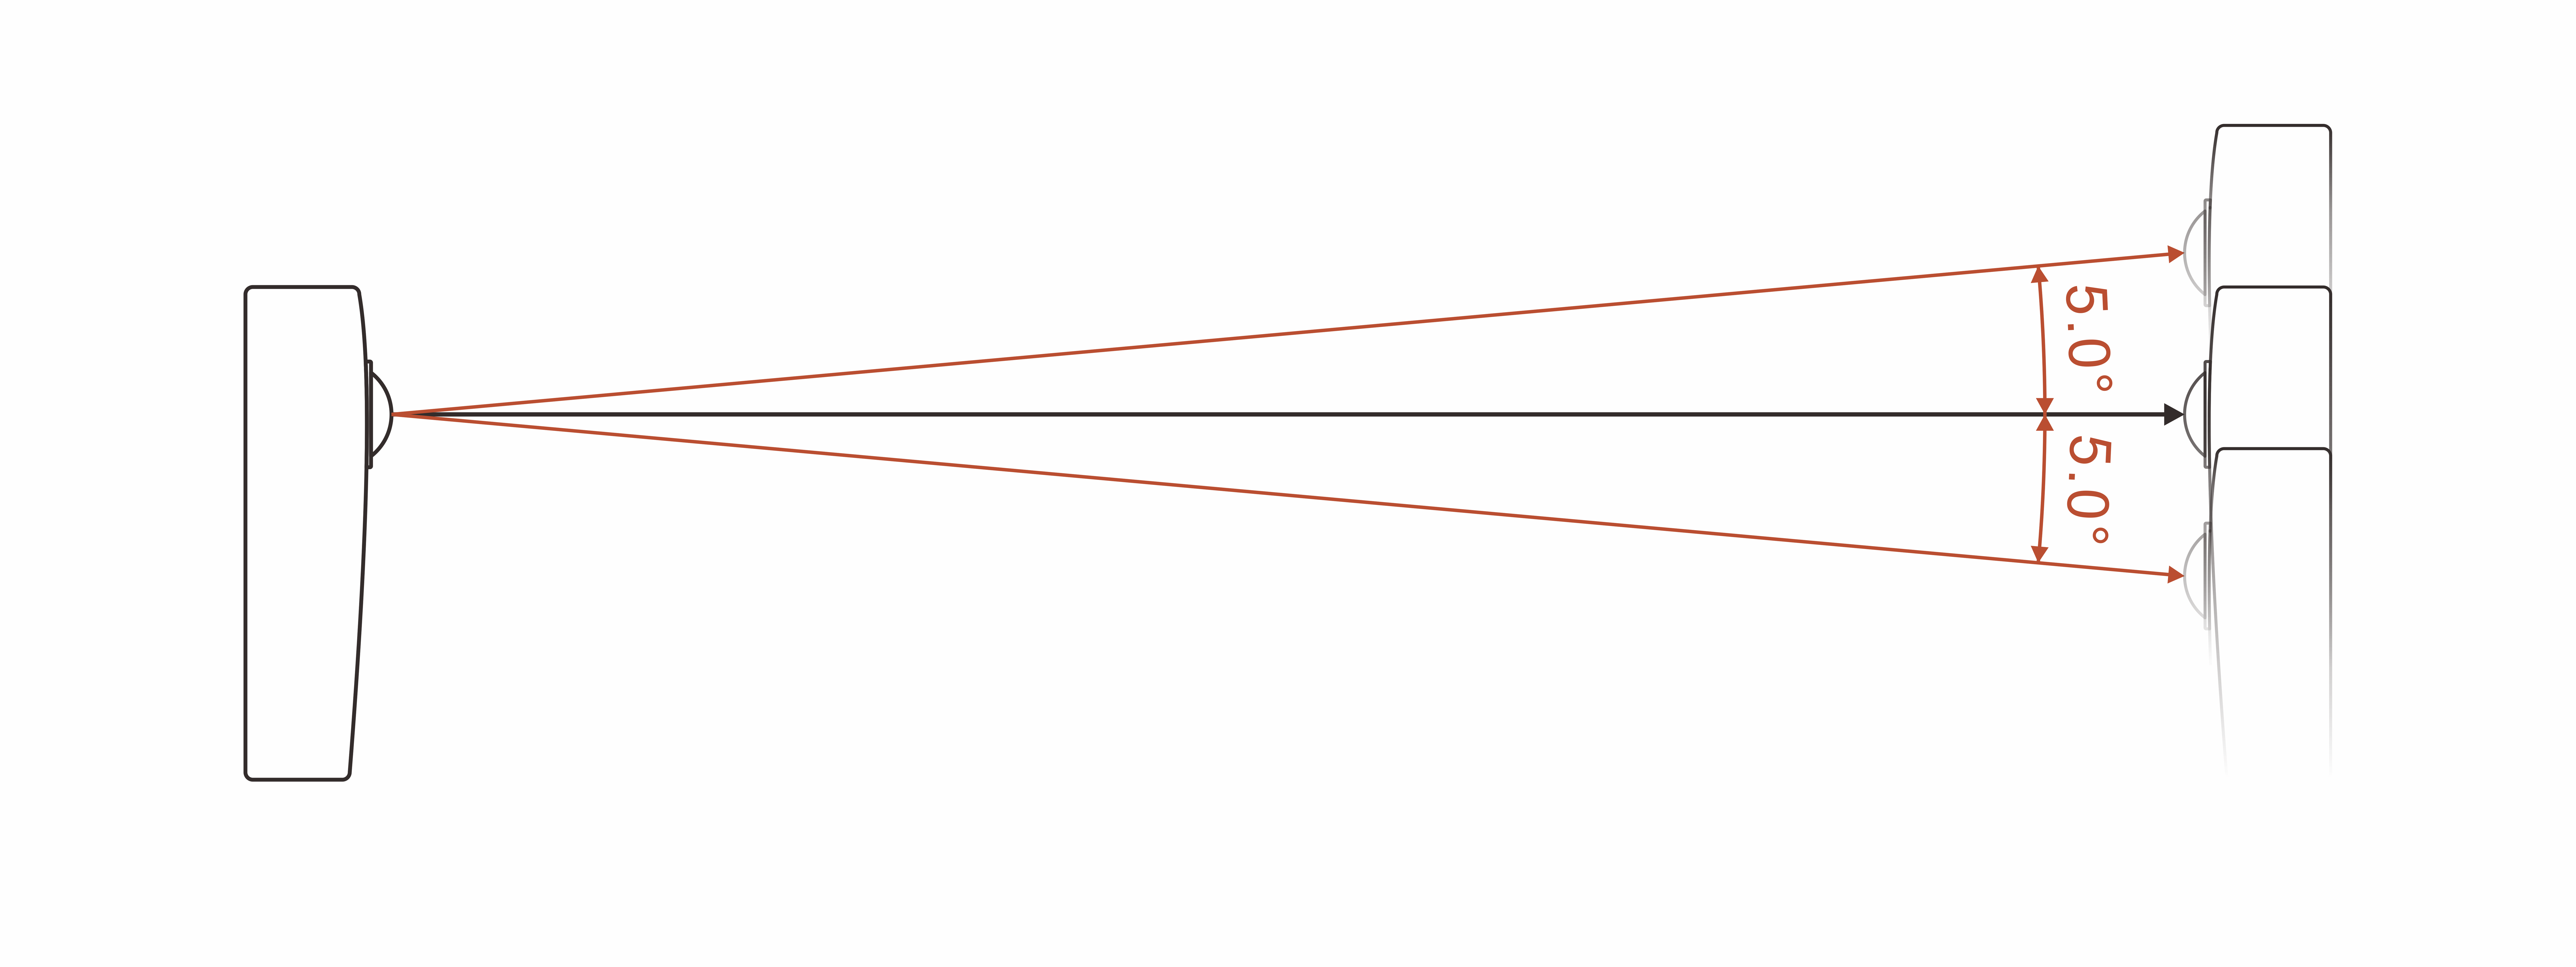 Photocell detection angle